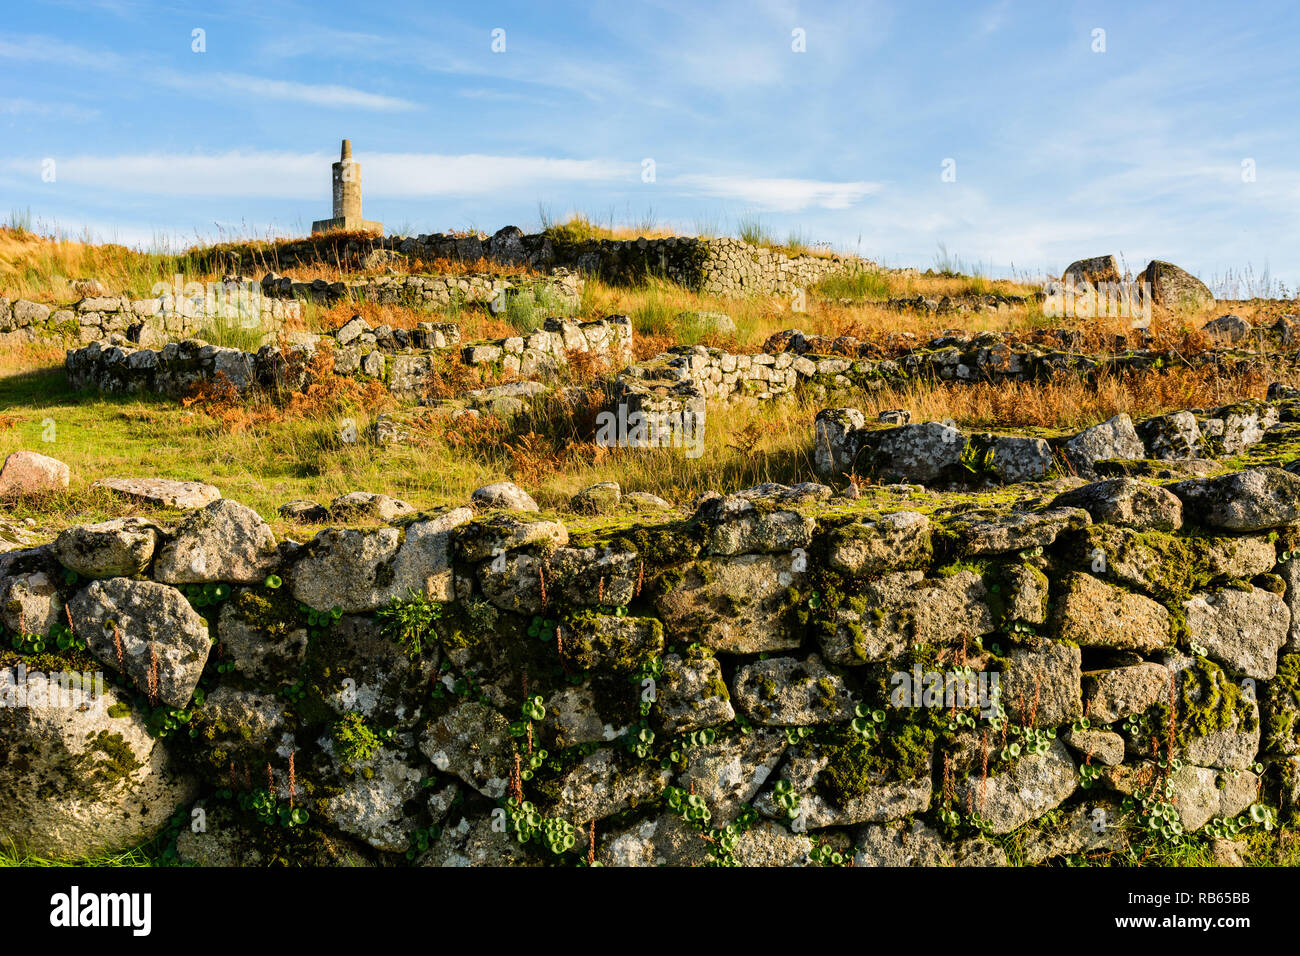 Paços de Ferreira, Portugal - October 19, 2014 : Citânia de Sanfins, located on a plateau, in a summit position that gave it a great security against  - Stock Image